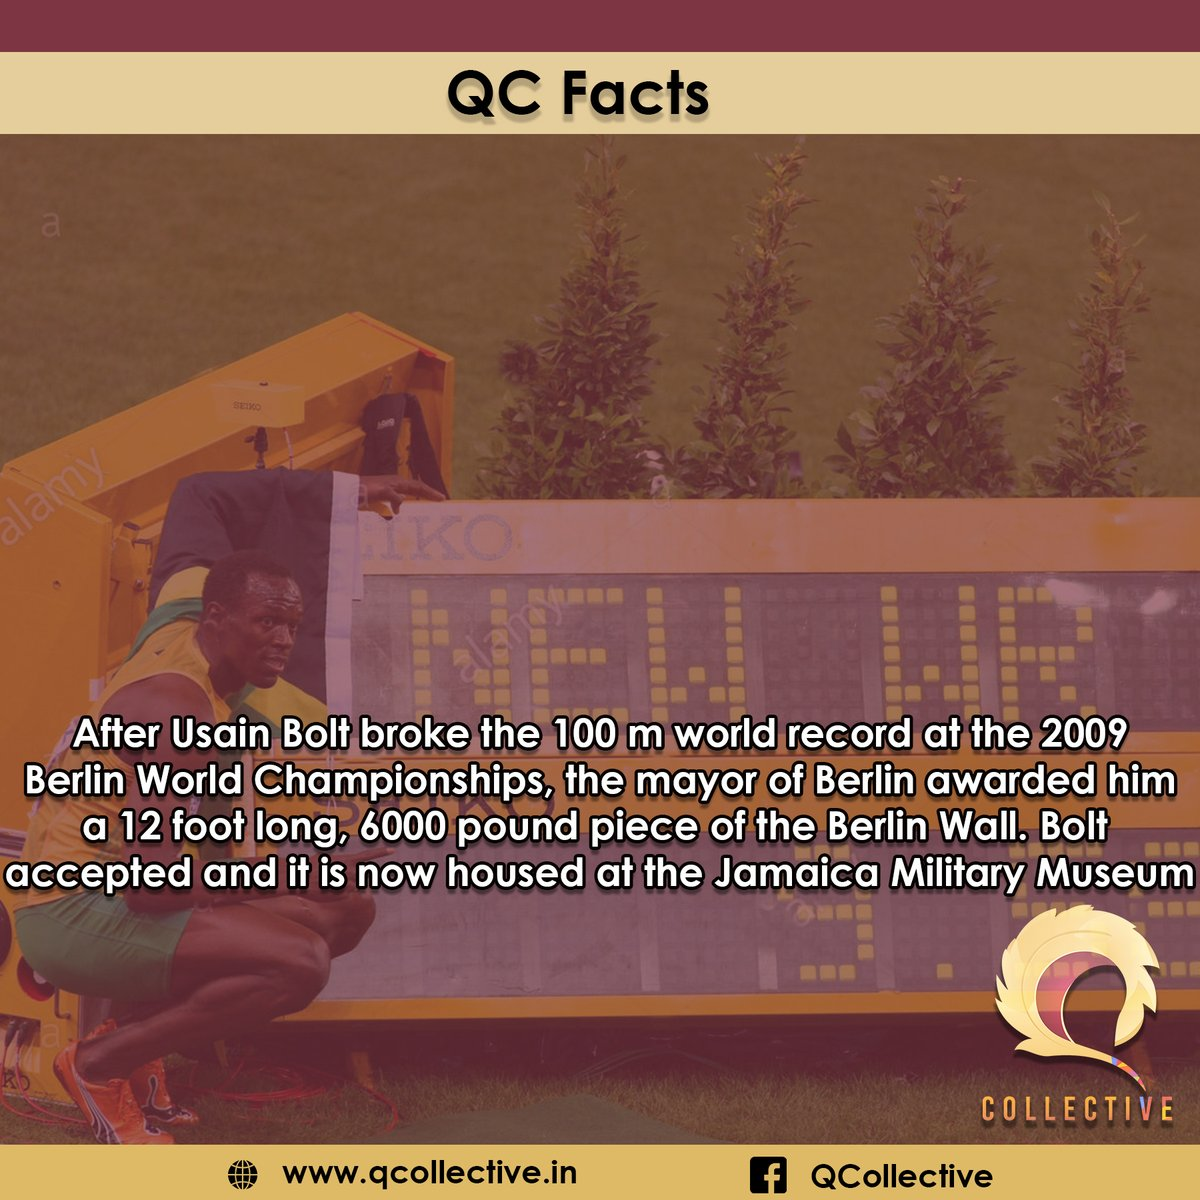 #QCFacts #QCollective #quiz #quizmasters #keralaquizzing #indiaquizzers #keralaquizzers #worldfacts #trivia #Facts #Fact #TwitterDaily #DailyFacts #FactDose #FactDailypic.twitter.com/DSU9x3HEga